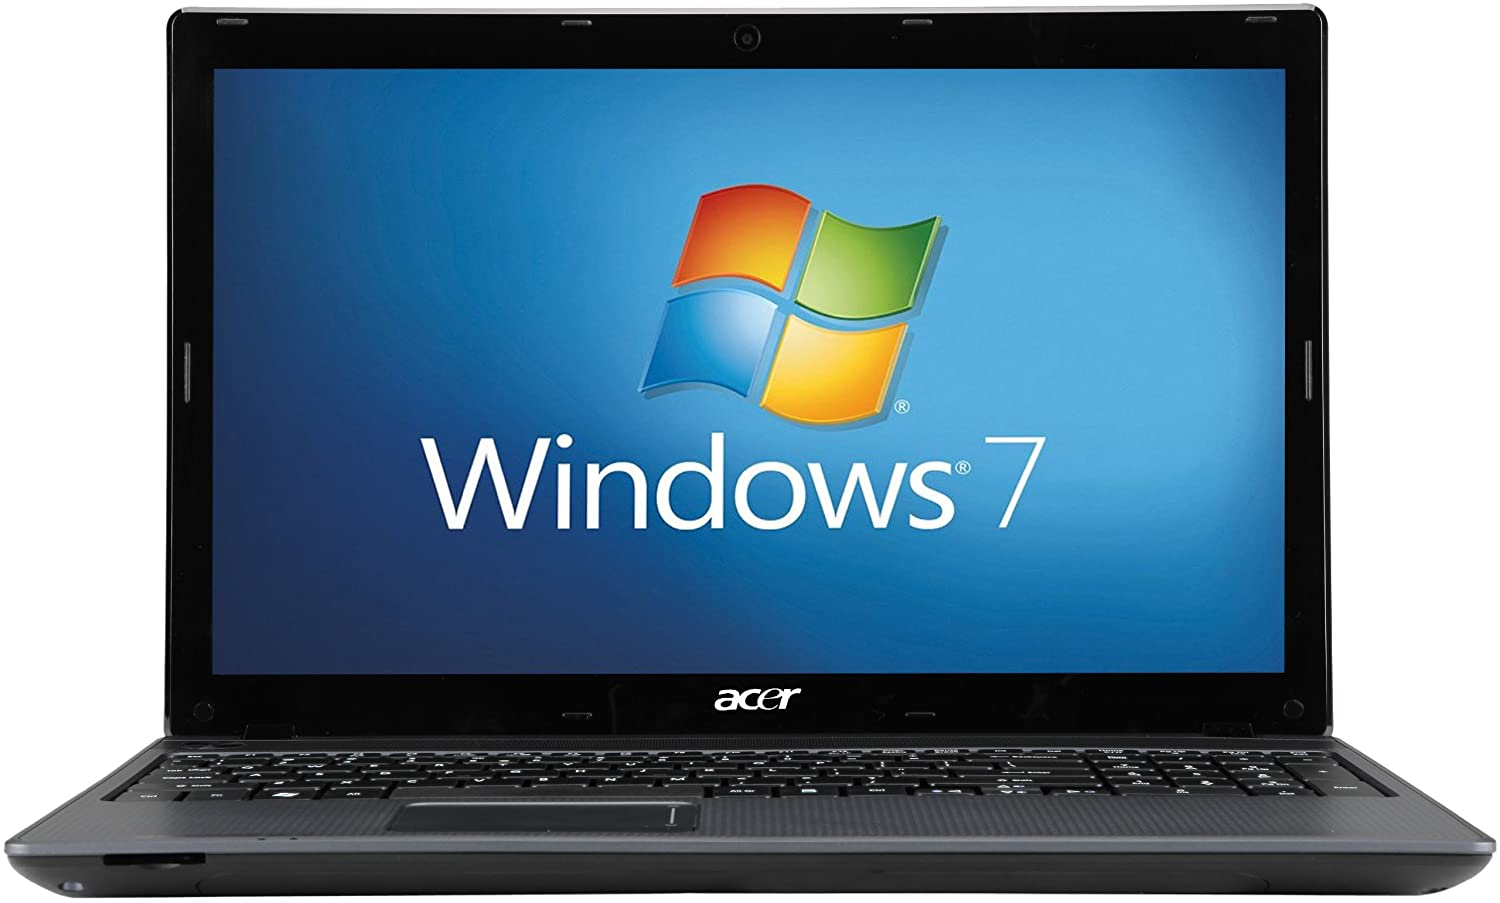 Acer Aspire 5333 Intel WLAN Driver for Windows 10